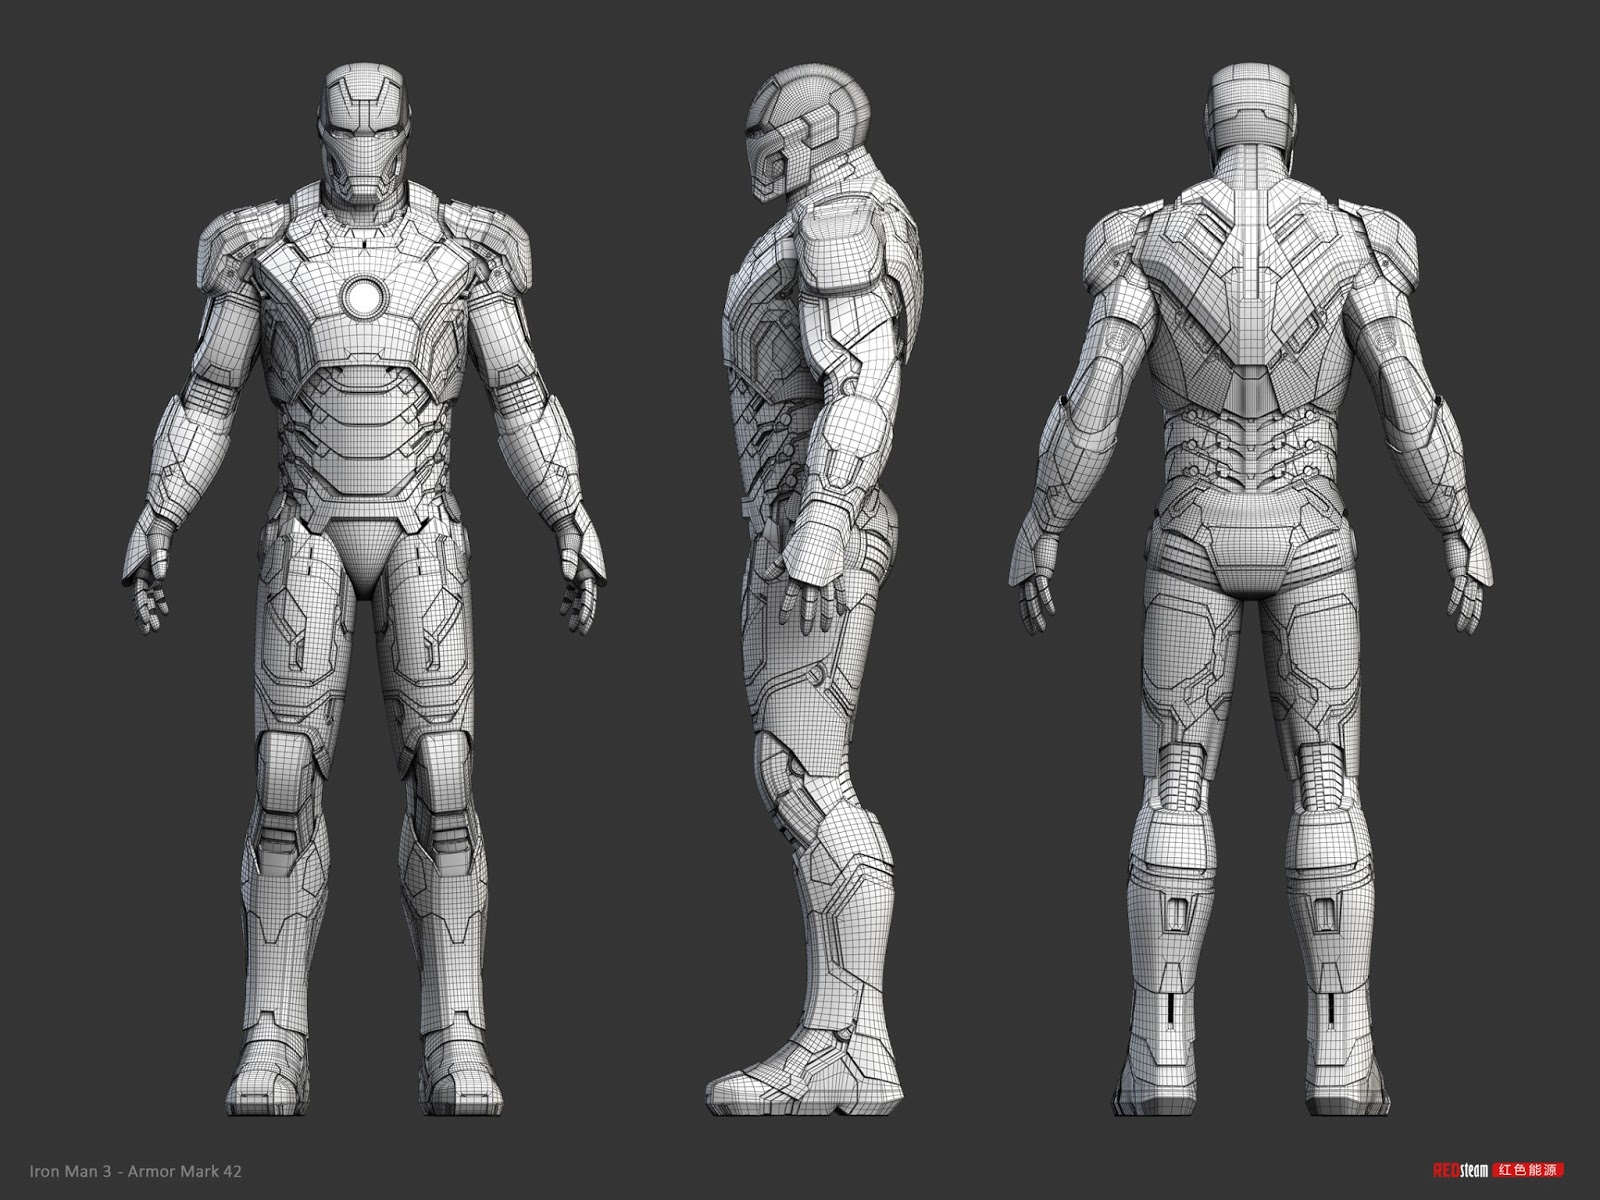 Iron Man 3 - armor Mark 42